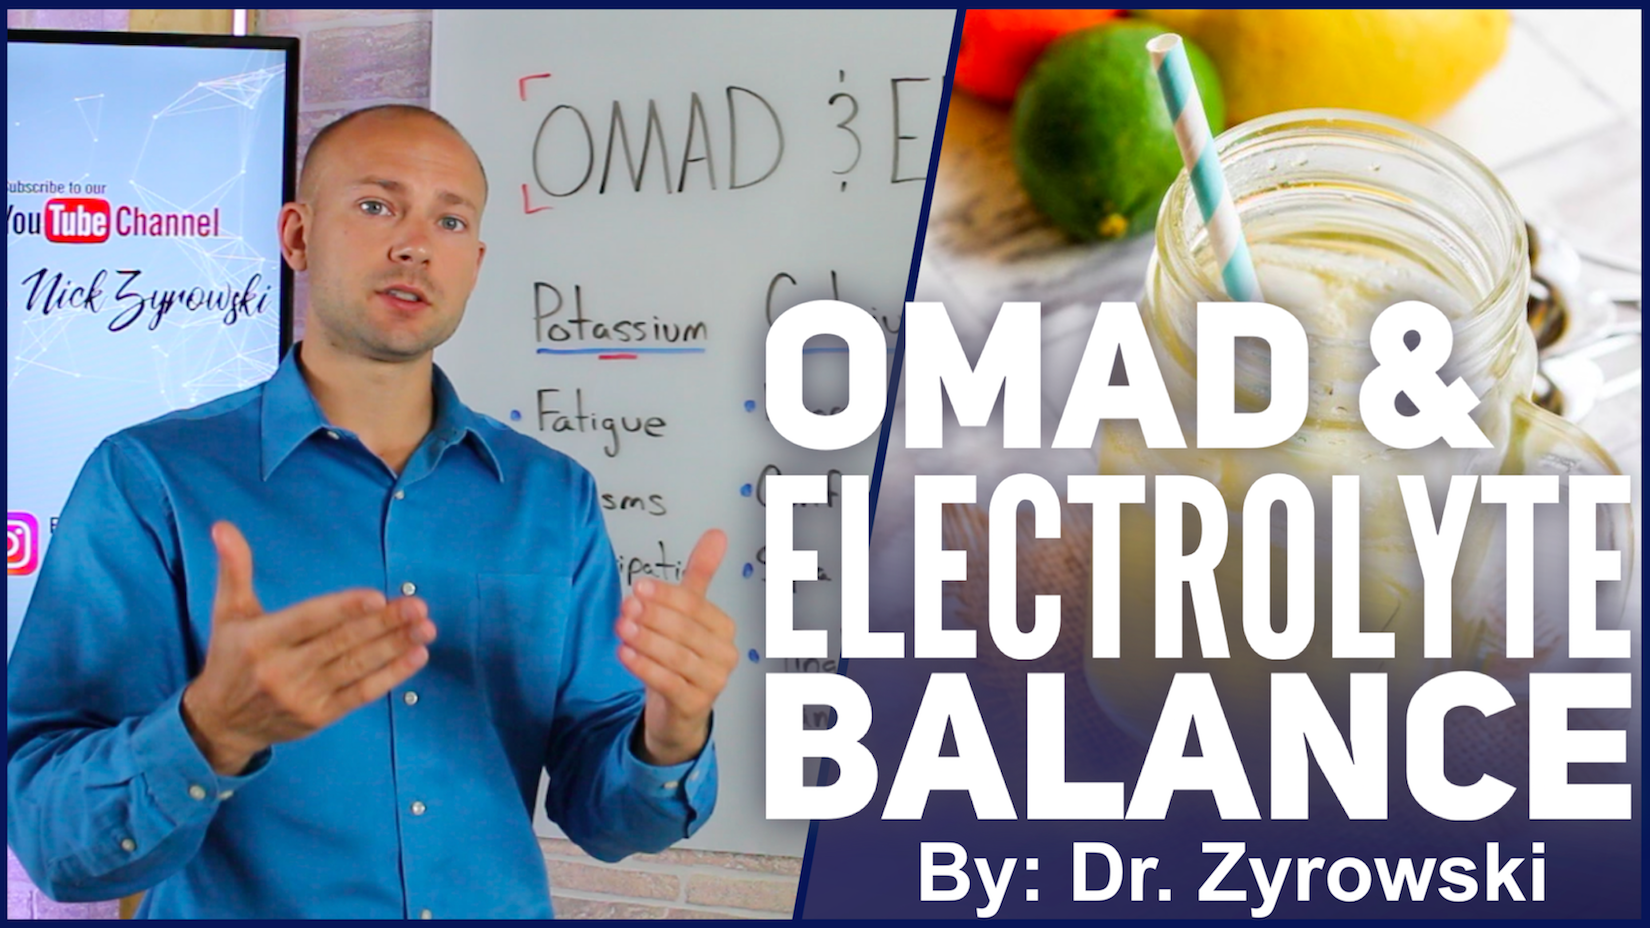 One Meal a Day and Electrolyte Balance